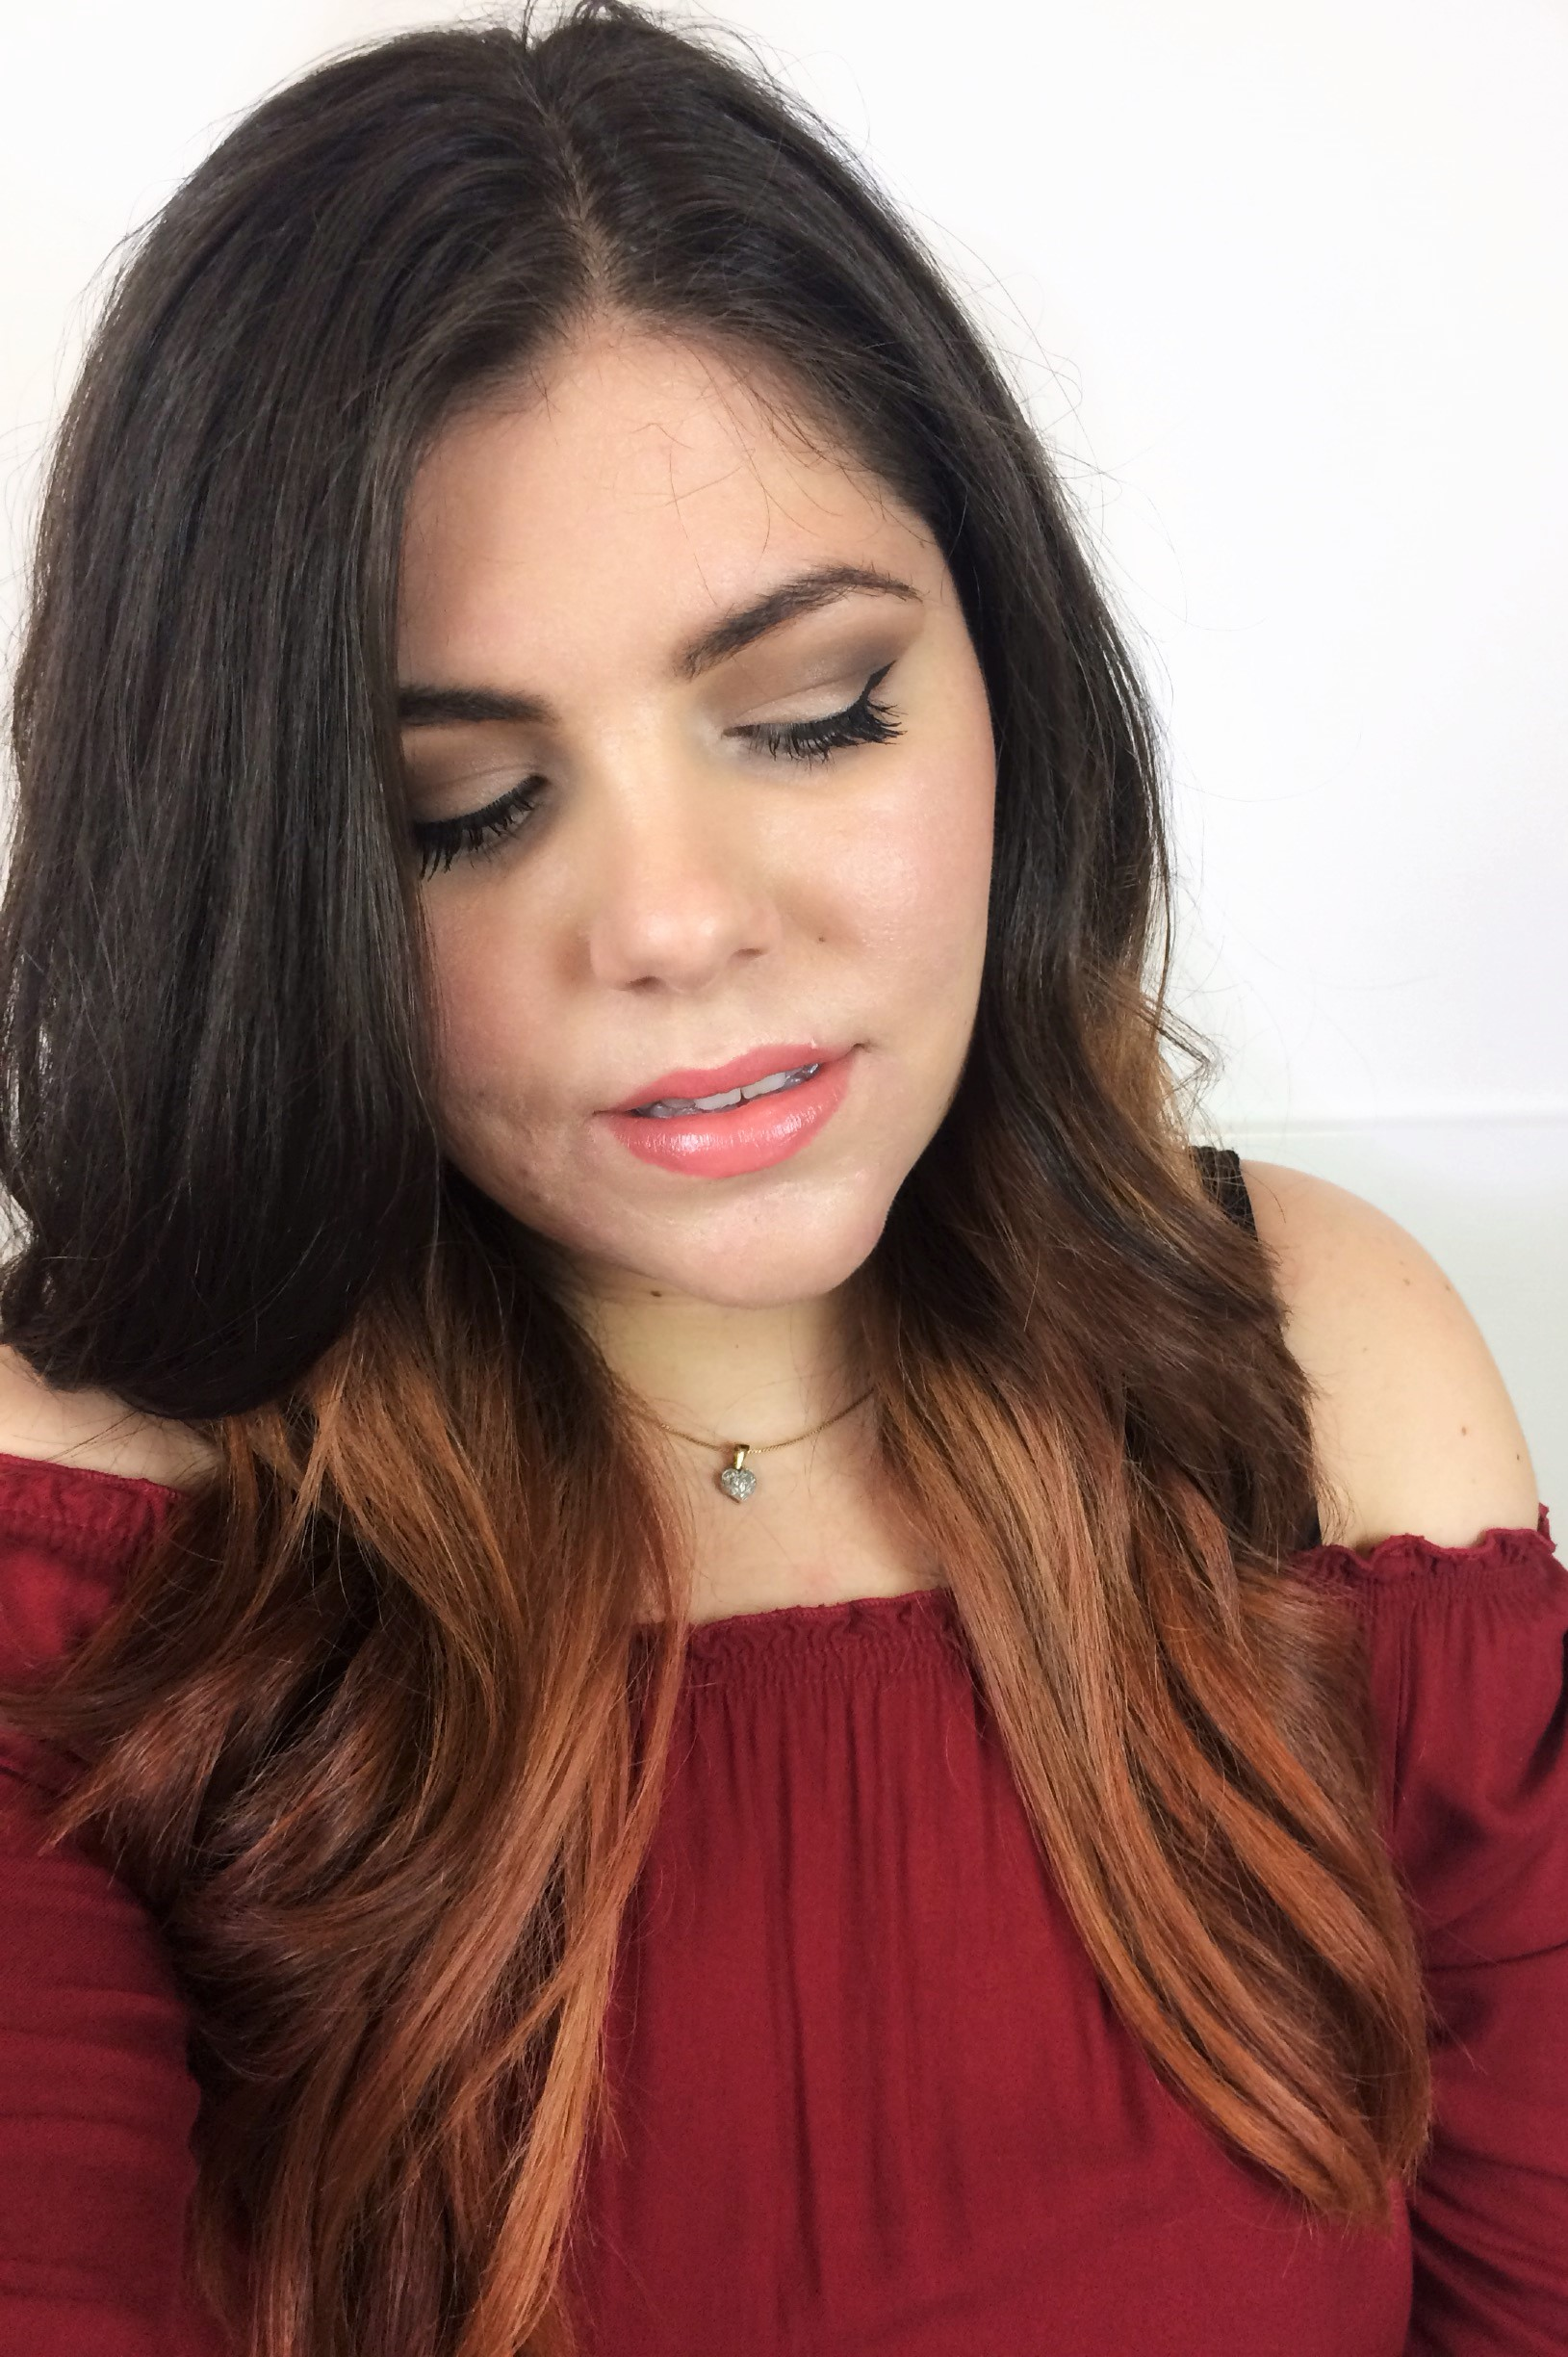 Effortless Girl Next Door Makeup (4)